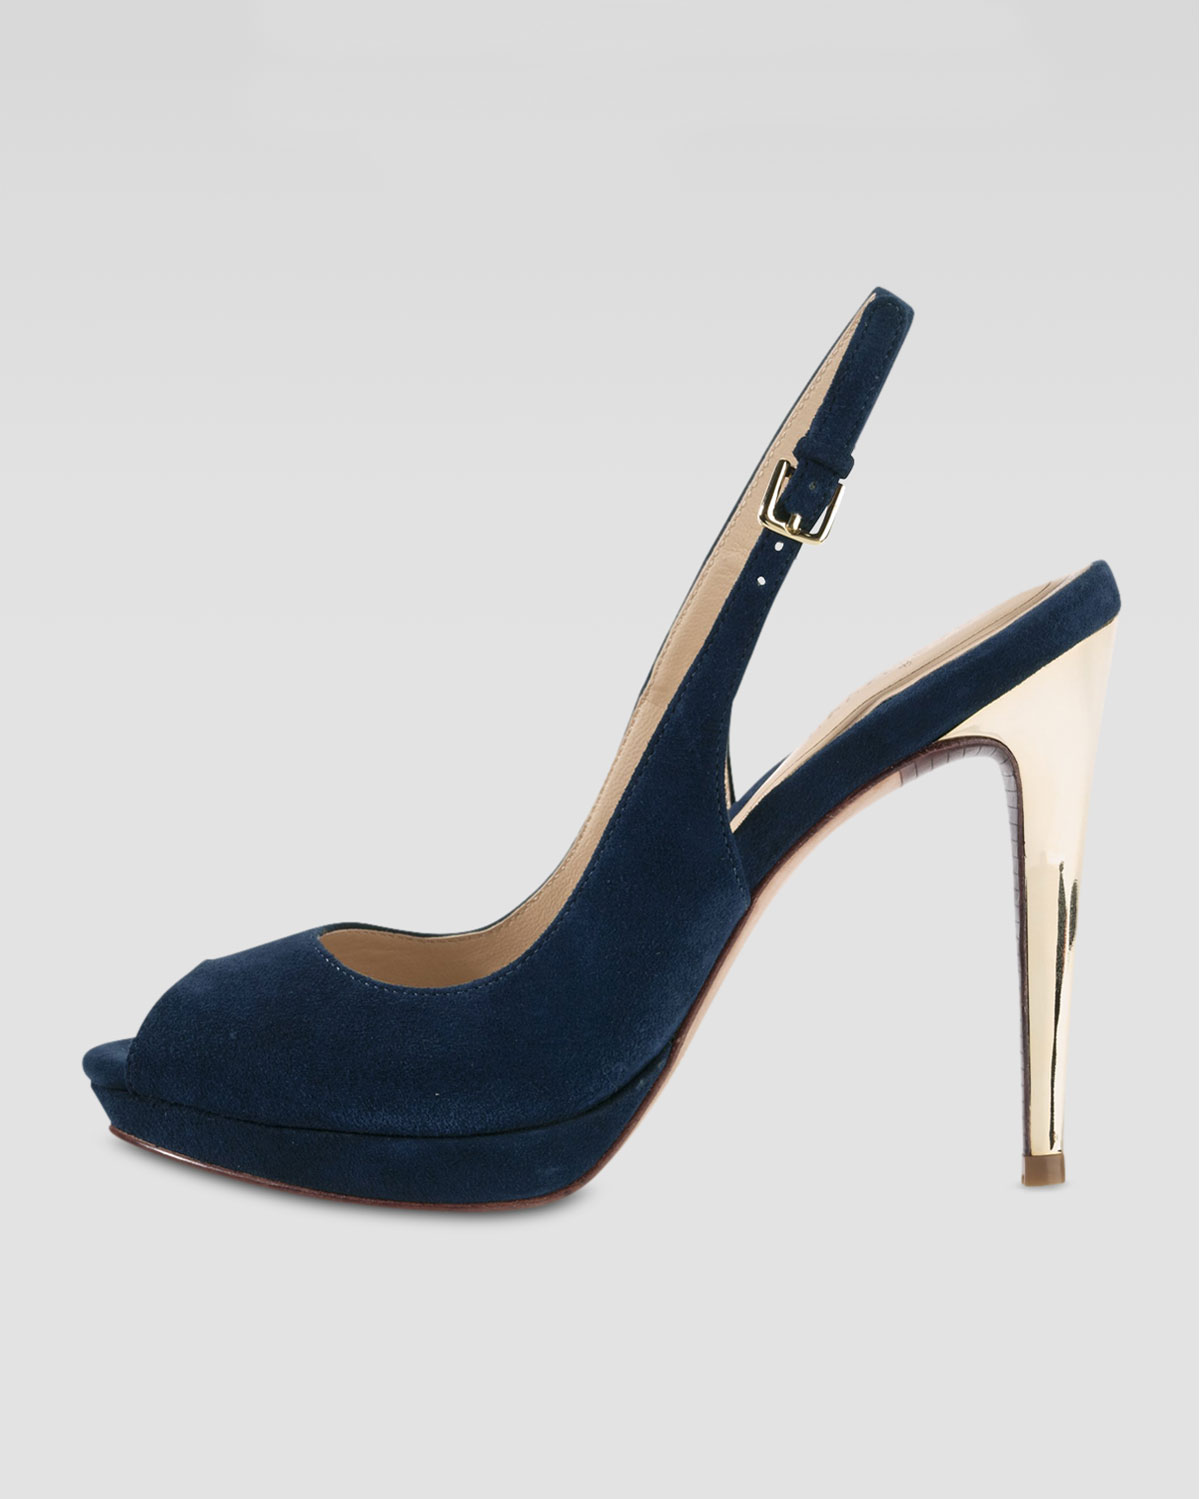 125e77e2be35 Lyst - Cole Haan Chelsea Peeptoe Slingback Pump in Blue